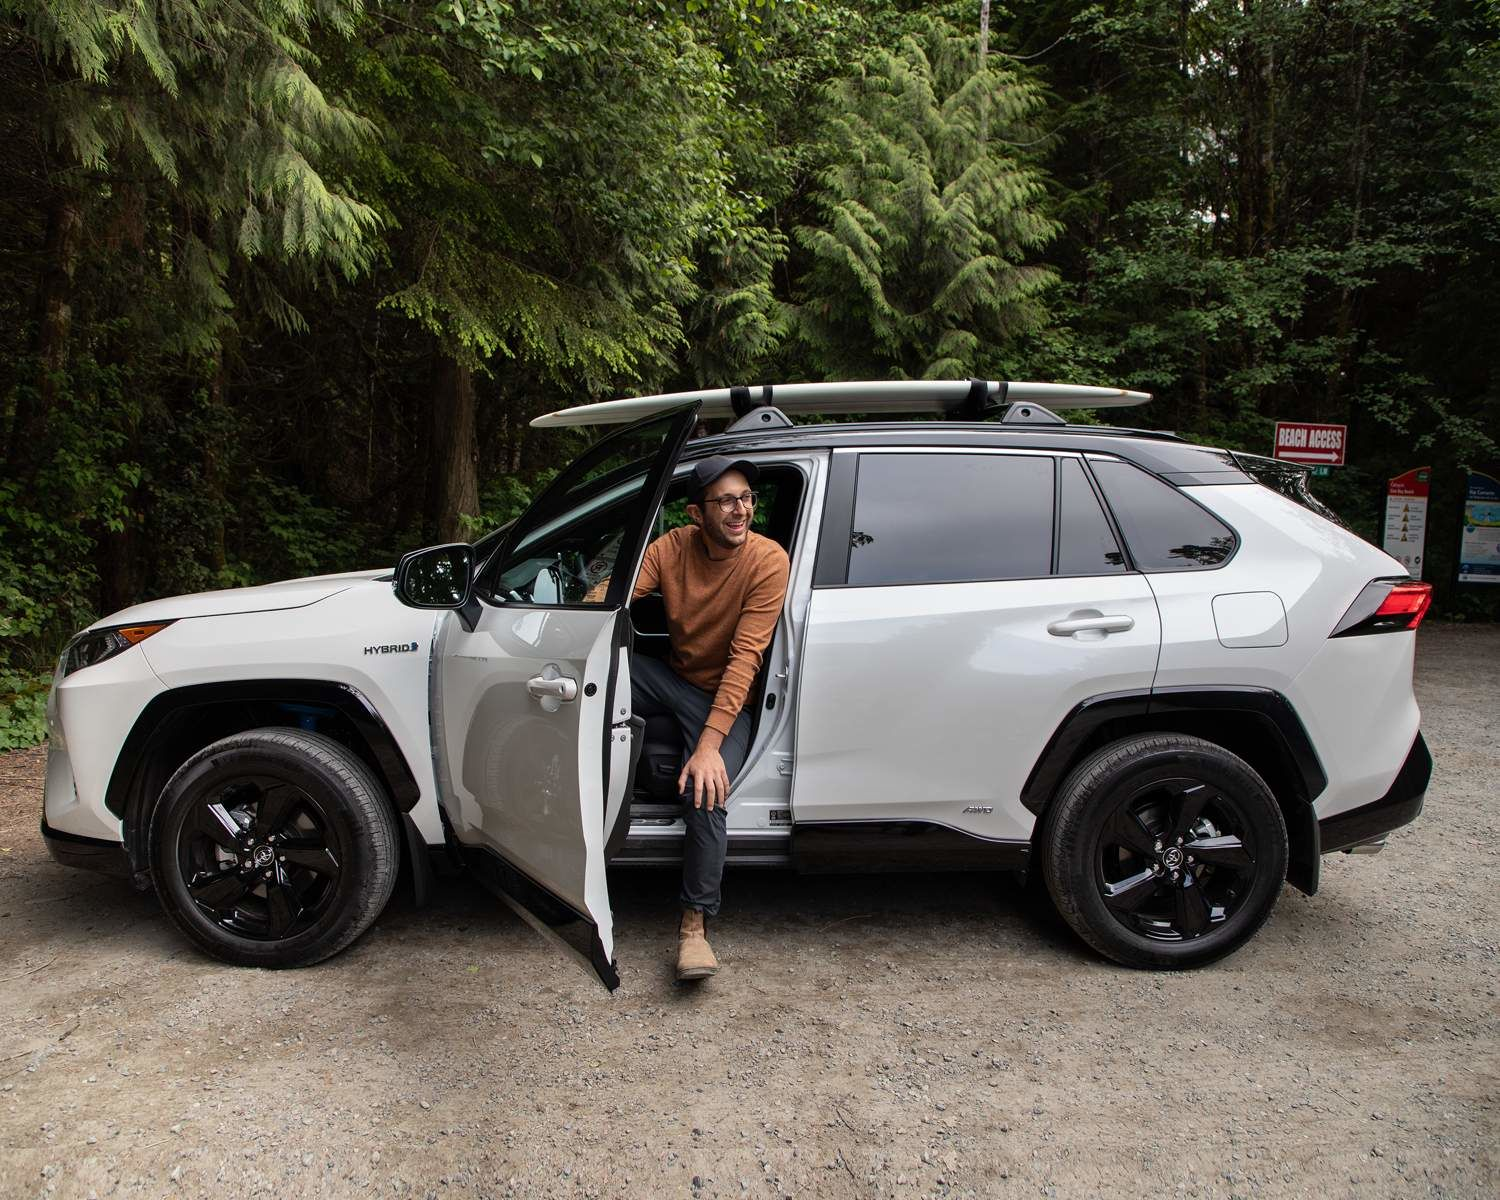 Michael in the RAV4 Hybrid XSE with Technology Package